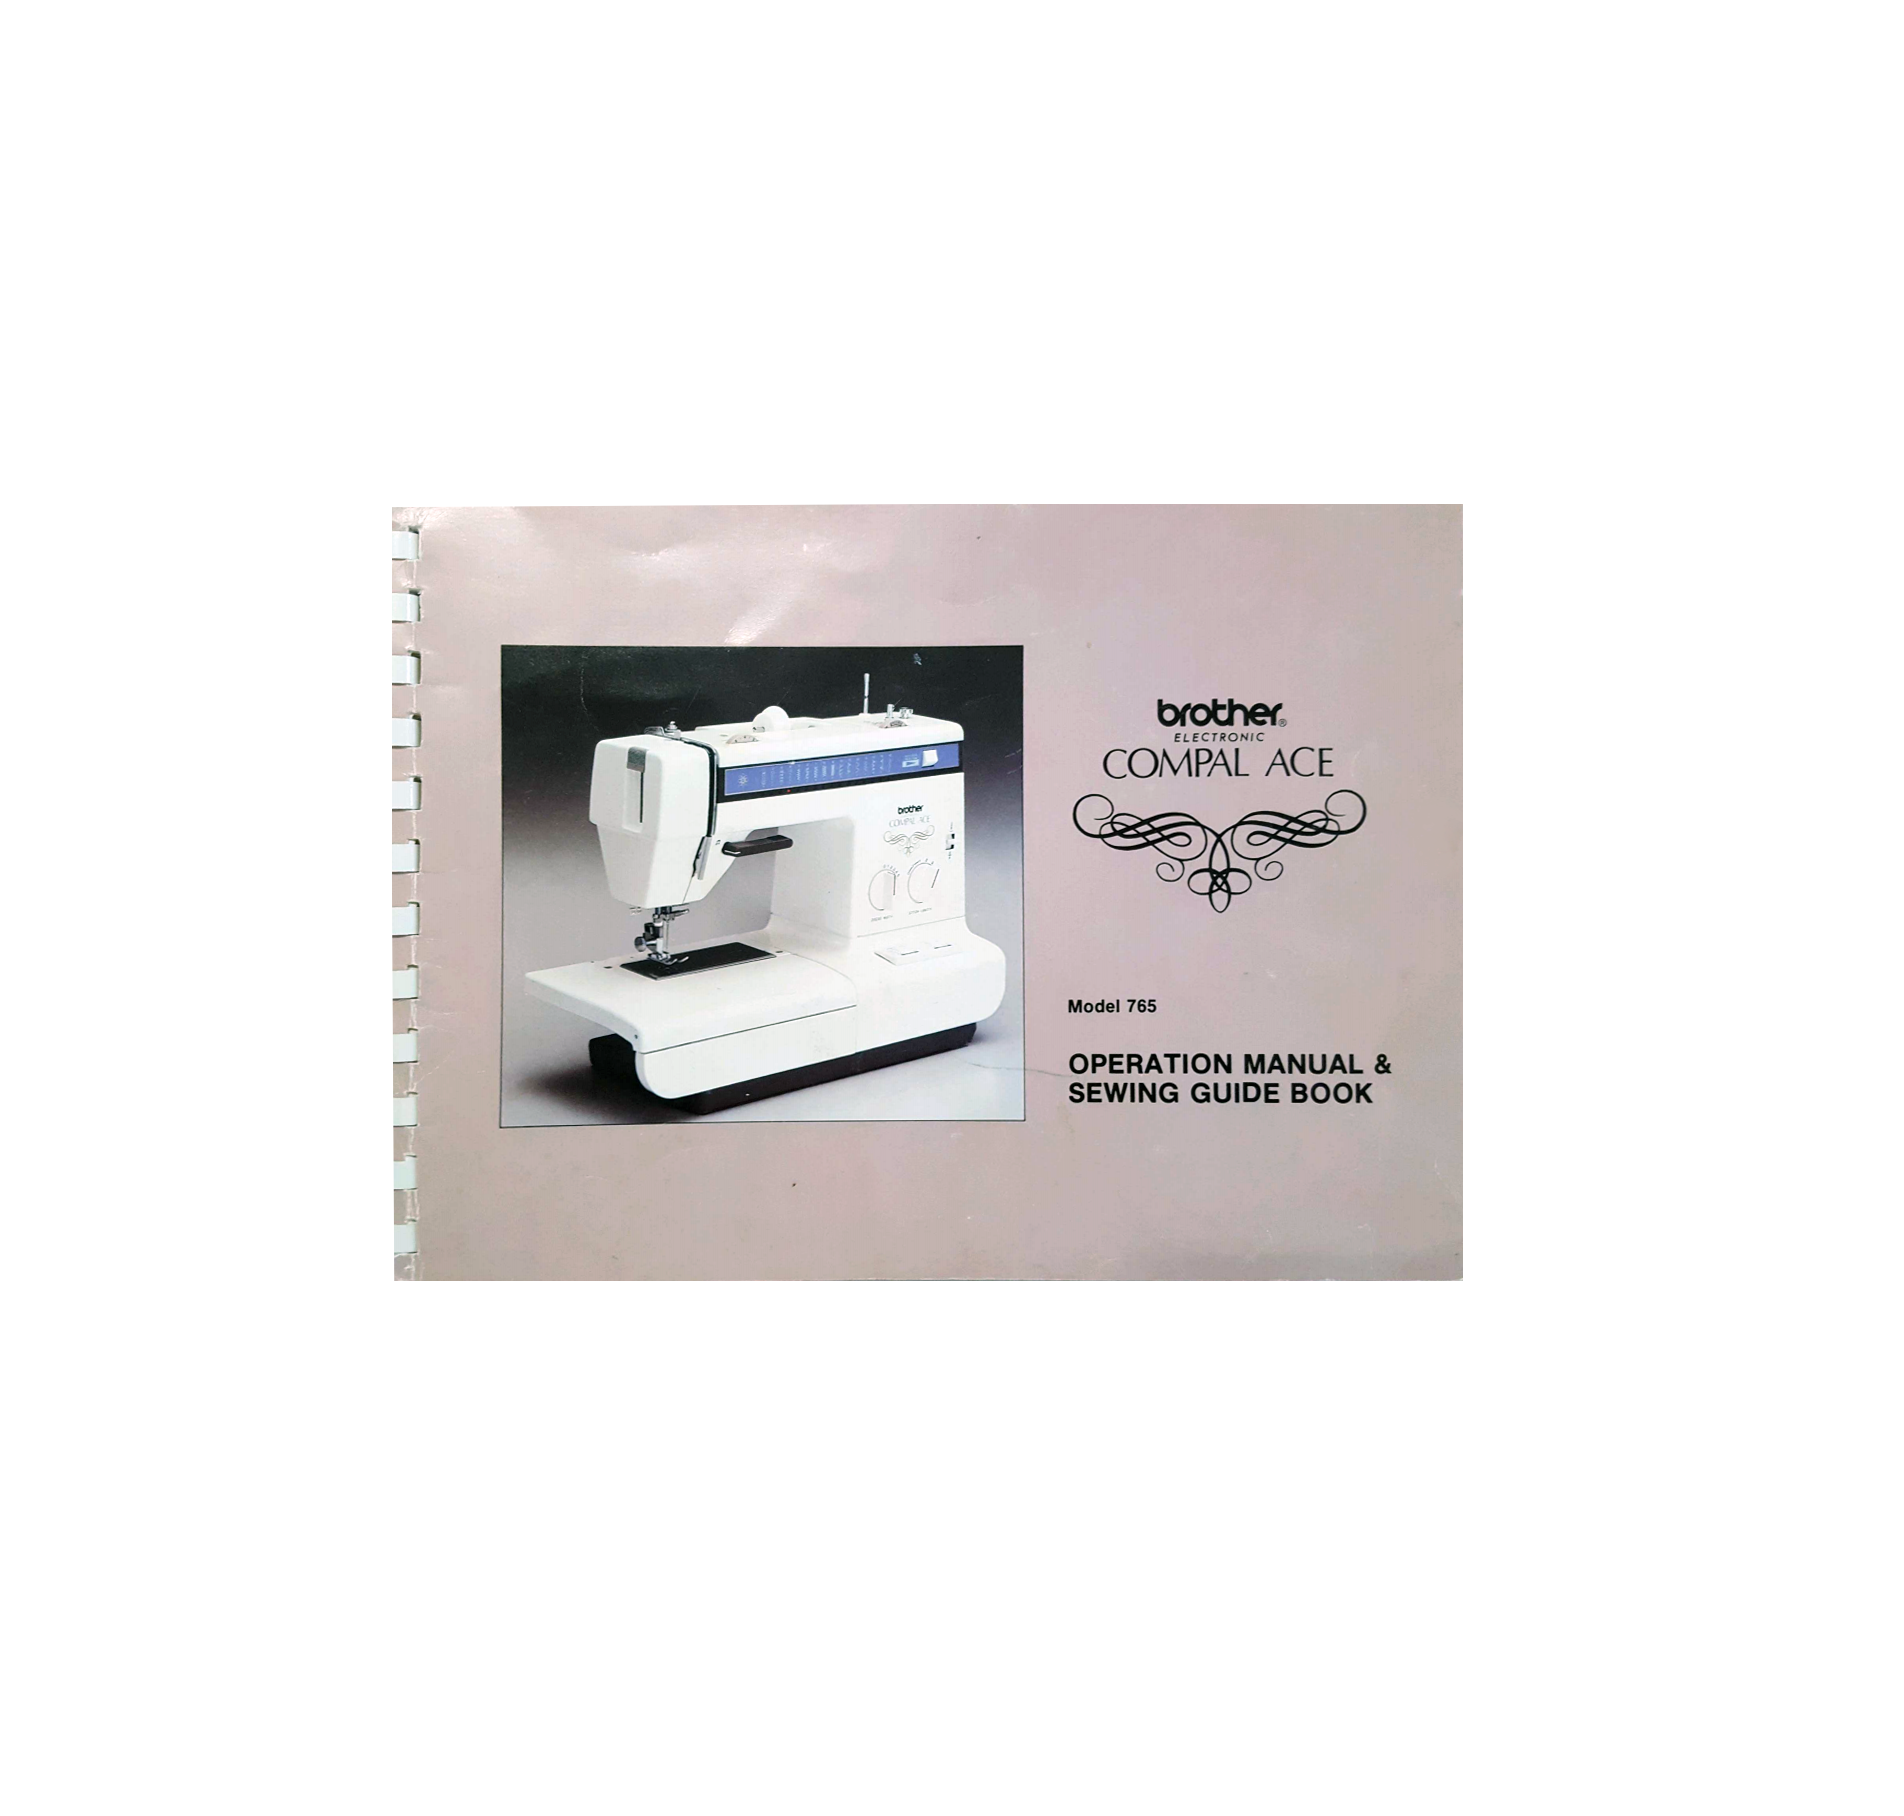 Compal Ace 765 Instruction Manual (Download) Sewing Machine Booklet Brochure Free Download PDF Read Online Epub